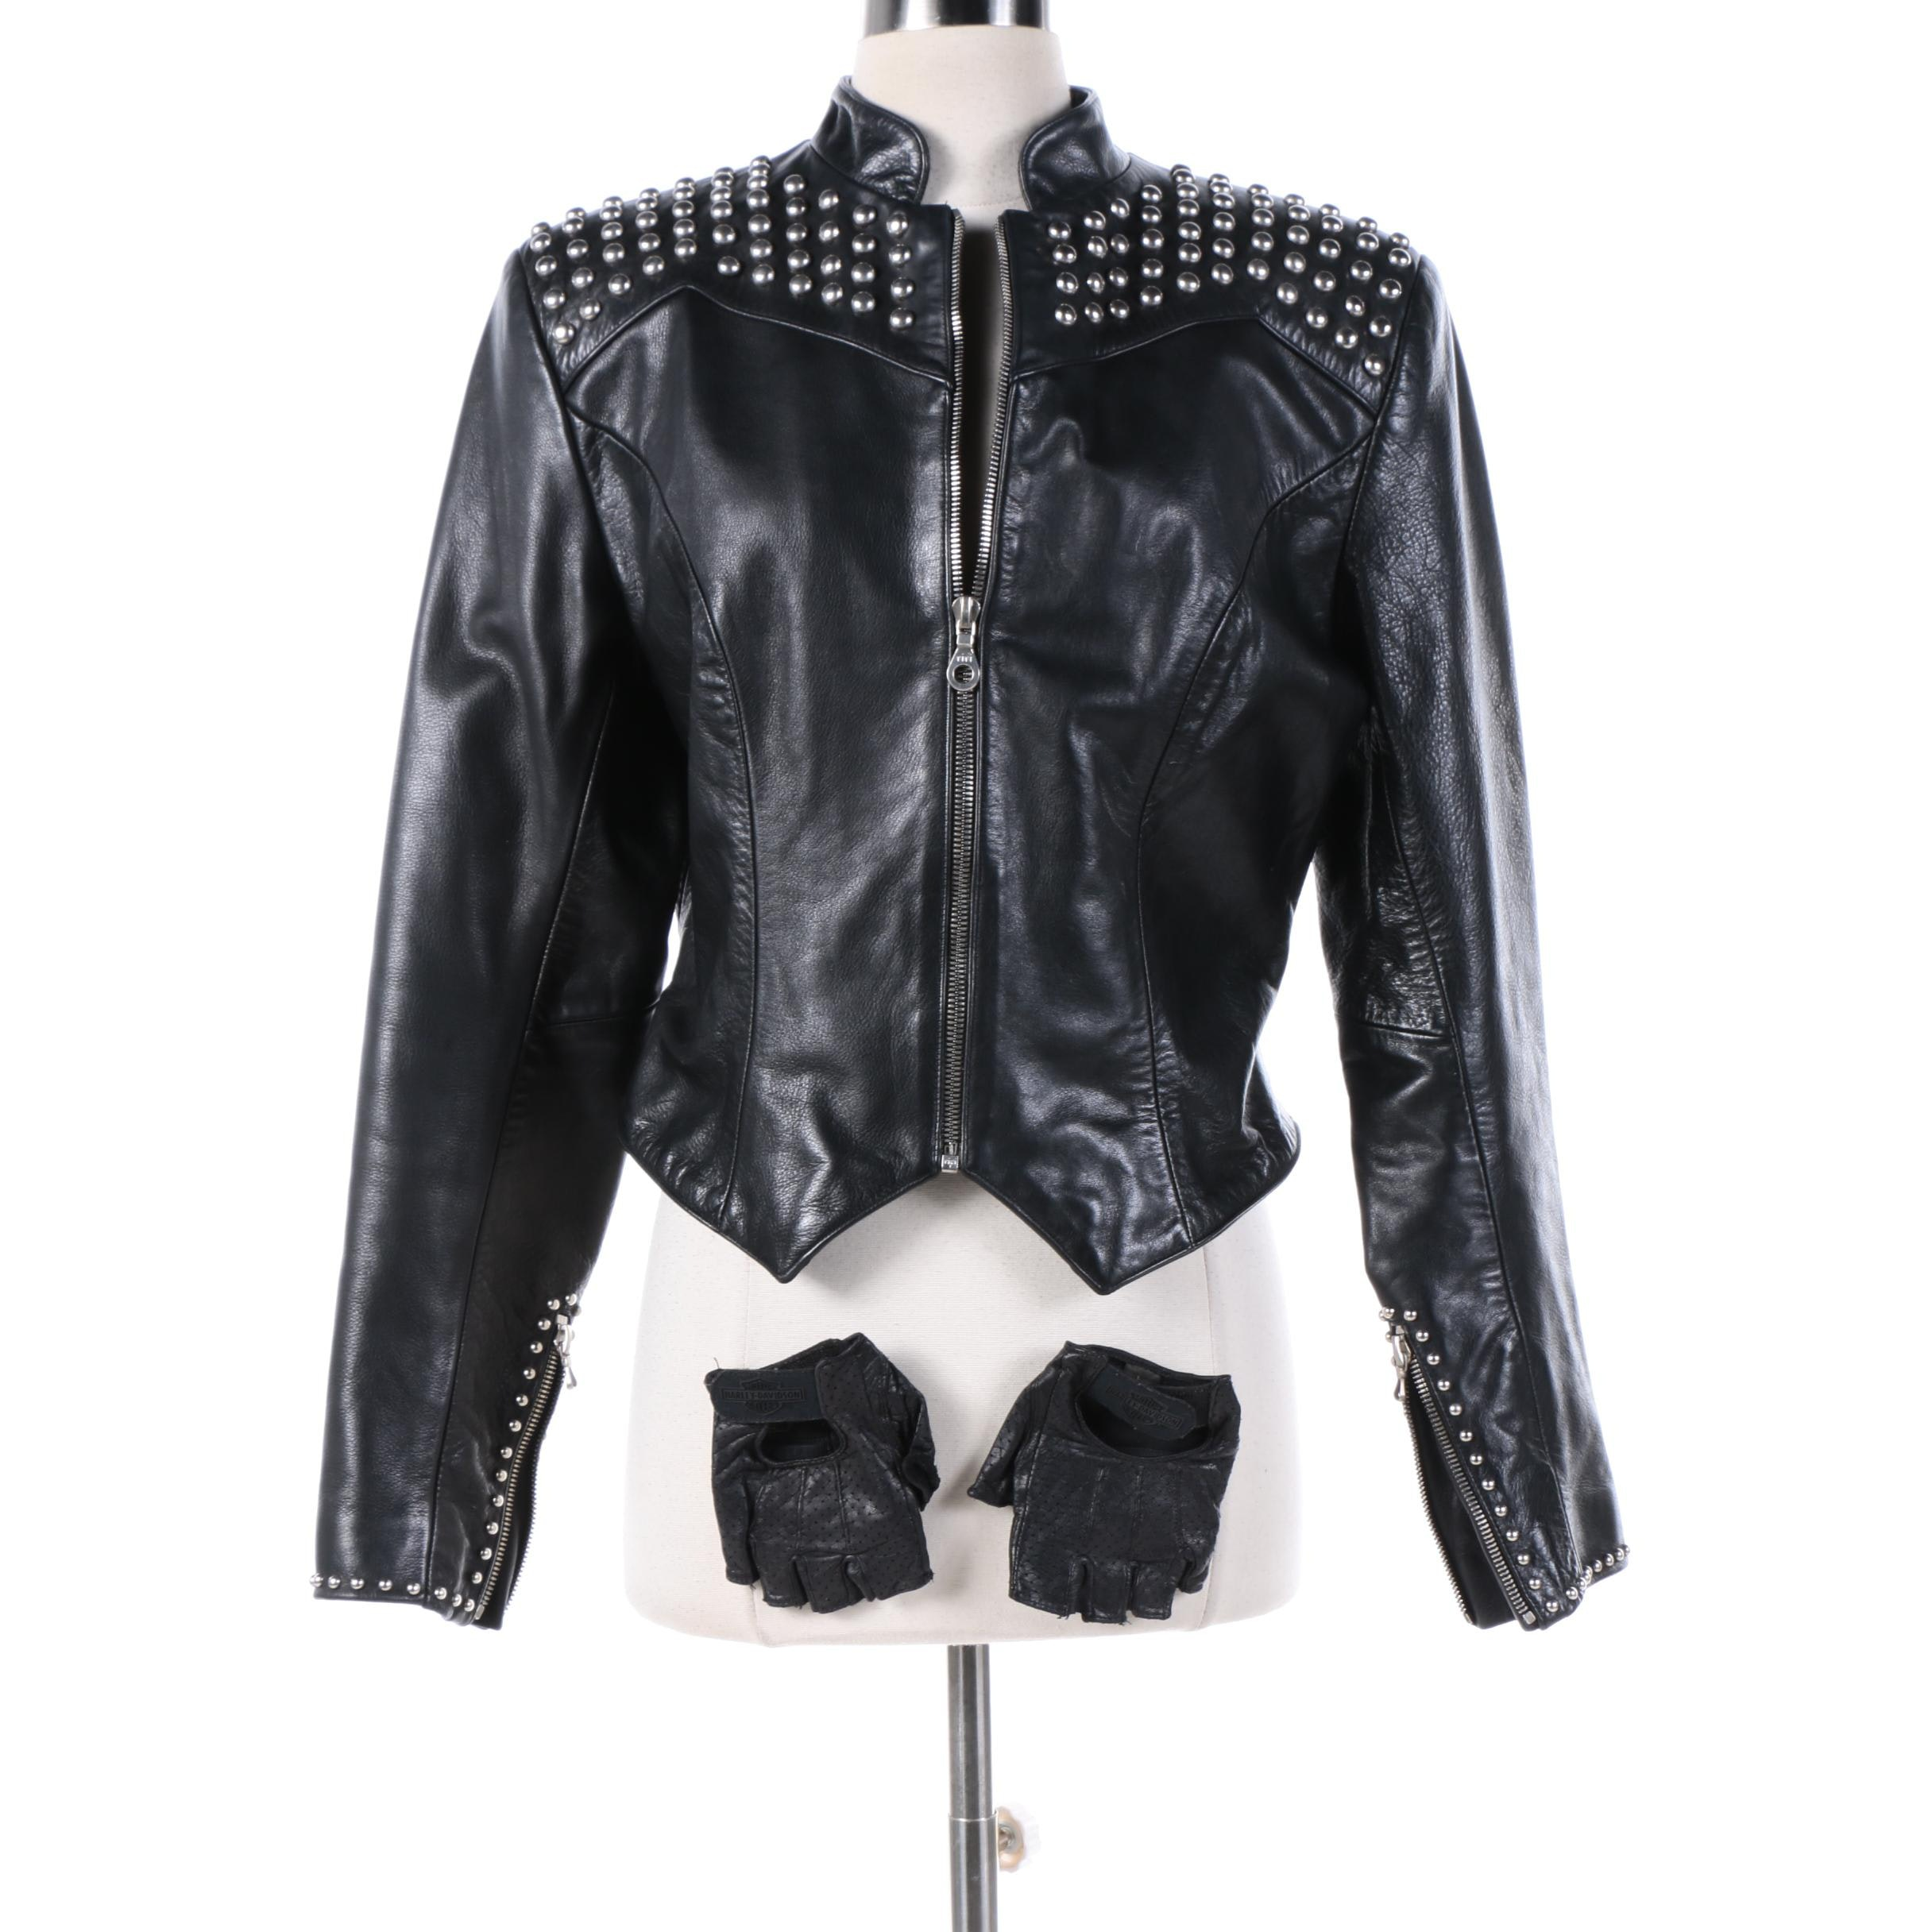 Women's Milwaukee Clothing Co. Studded Black Leather Jacket and Gloves